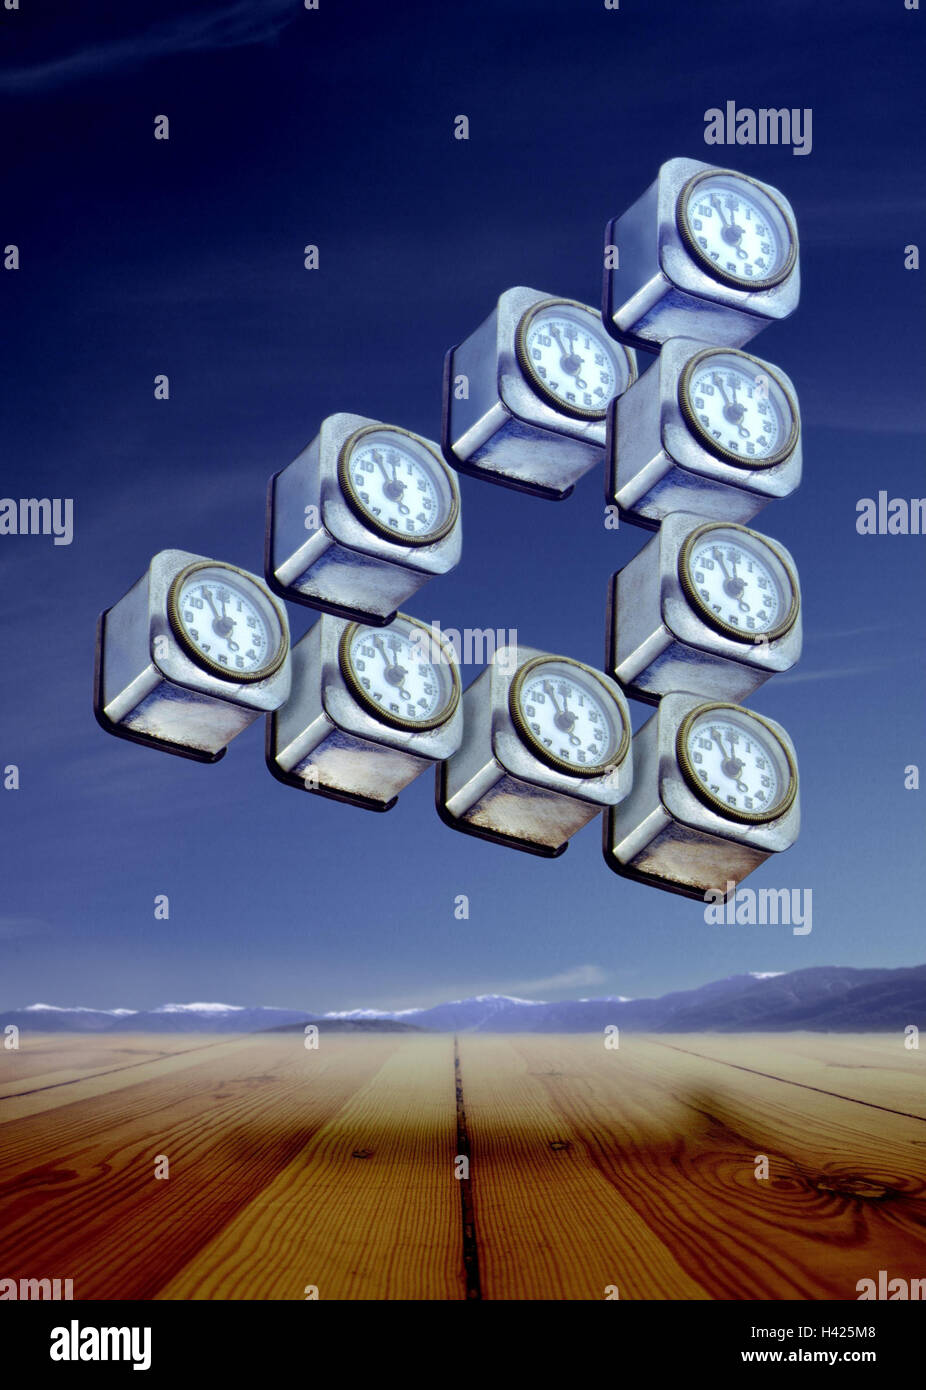 Surrealism, clocks, wooden floor, mountains, times, times, times, 'five in front of twelve', 'shortly - Stock Image